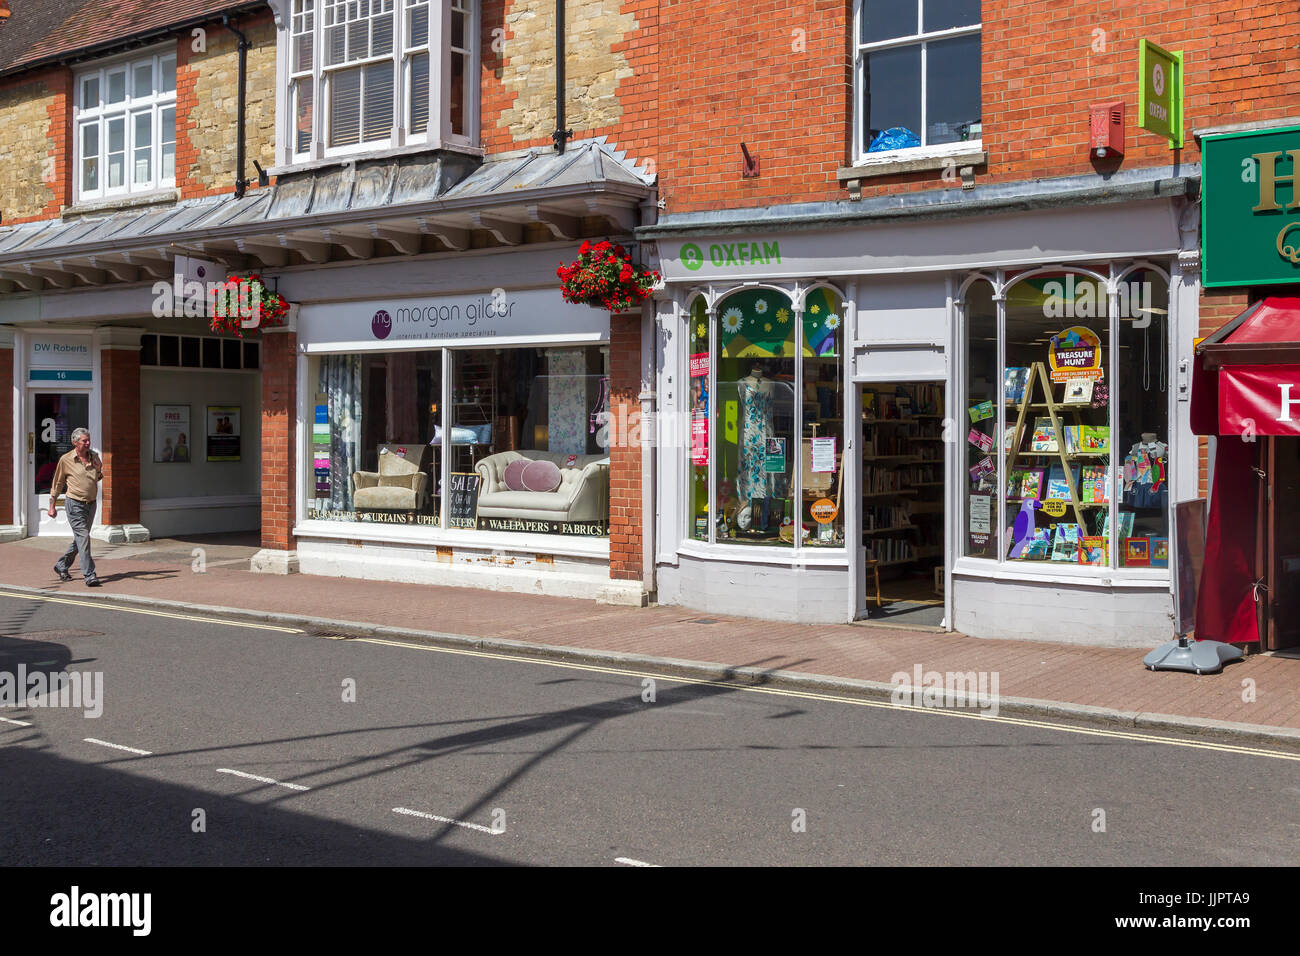 Shopfronts on the high street in Stony Stratford, North Buckinghamshire, uk - Stock Image